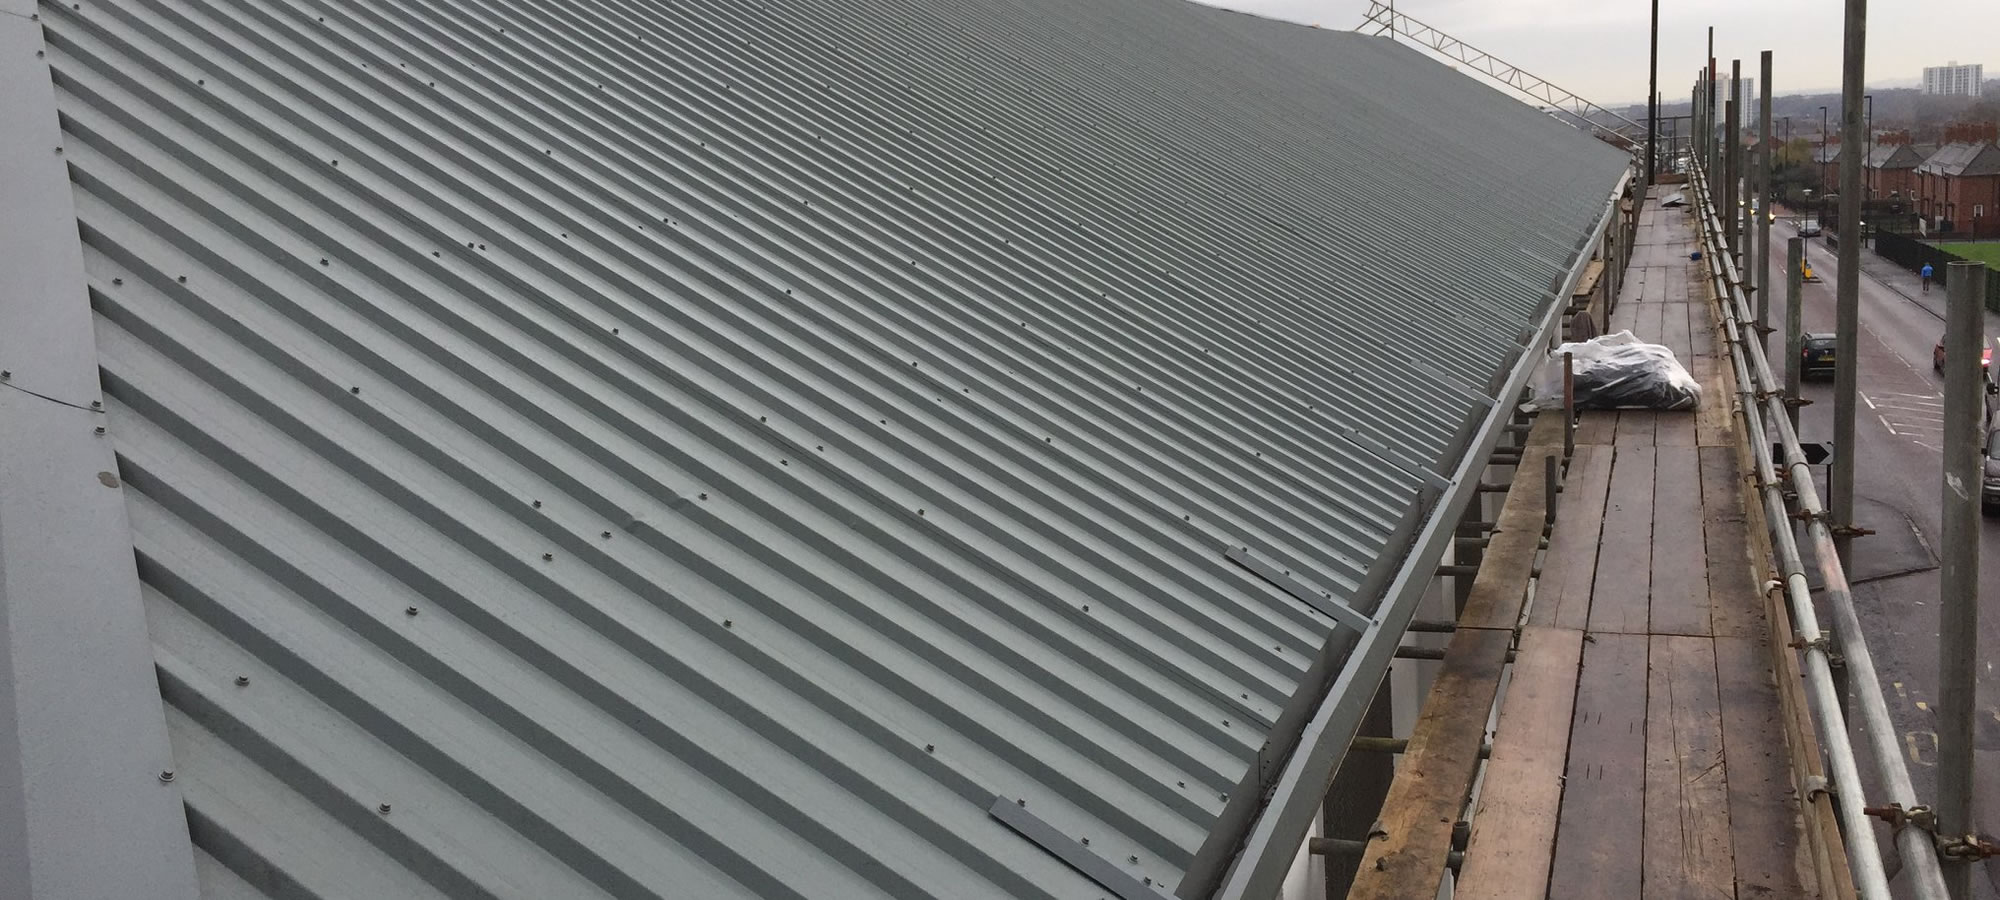 Roofing Installations In Newcastle Upon Tyne Industrial Roofing Services